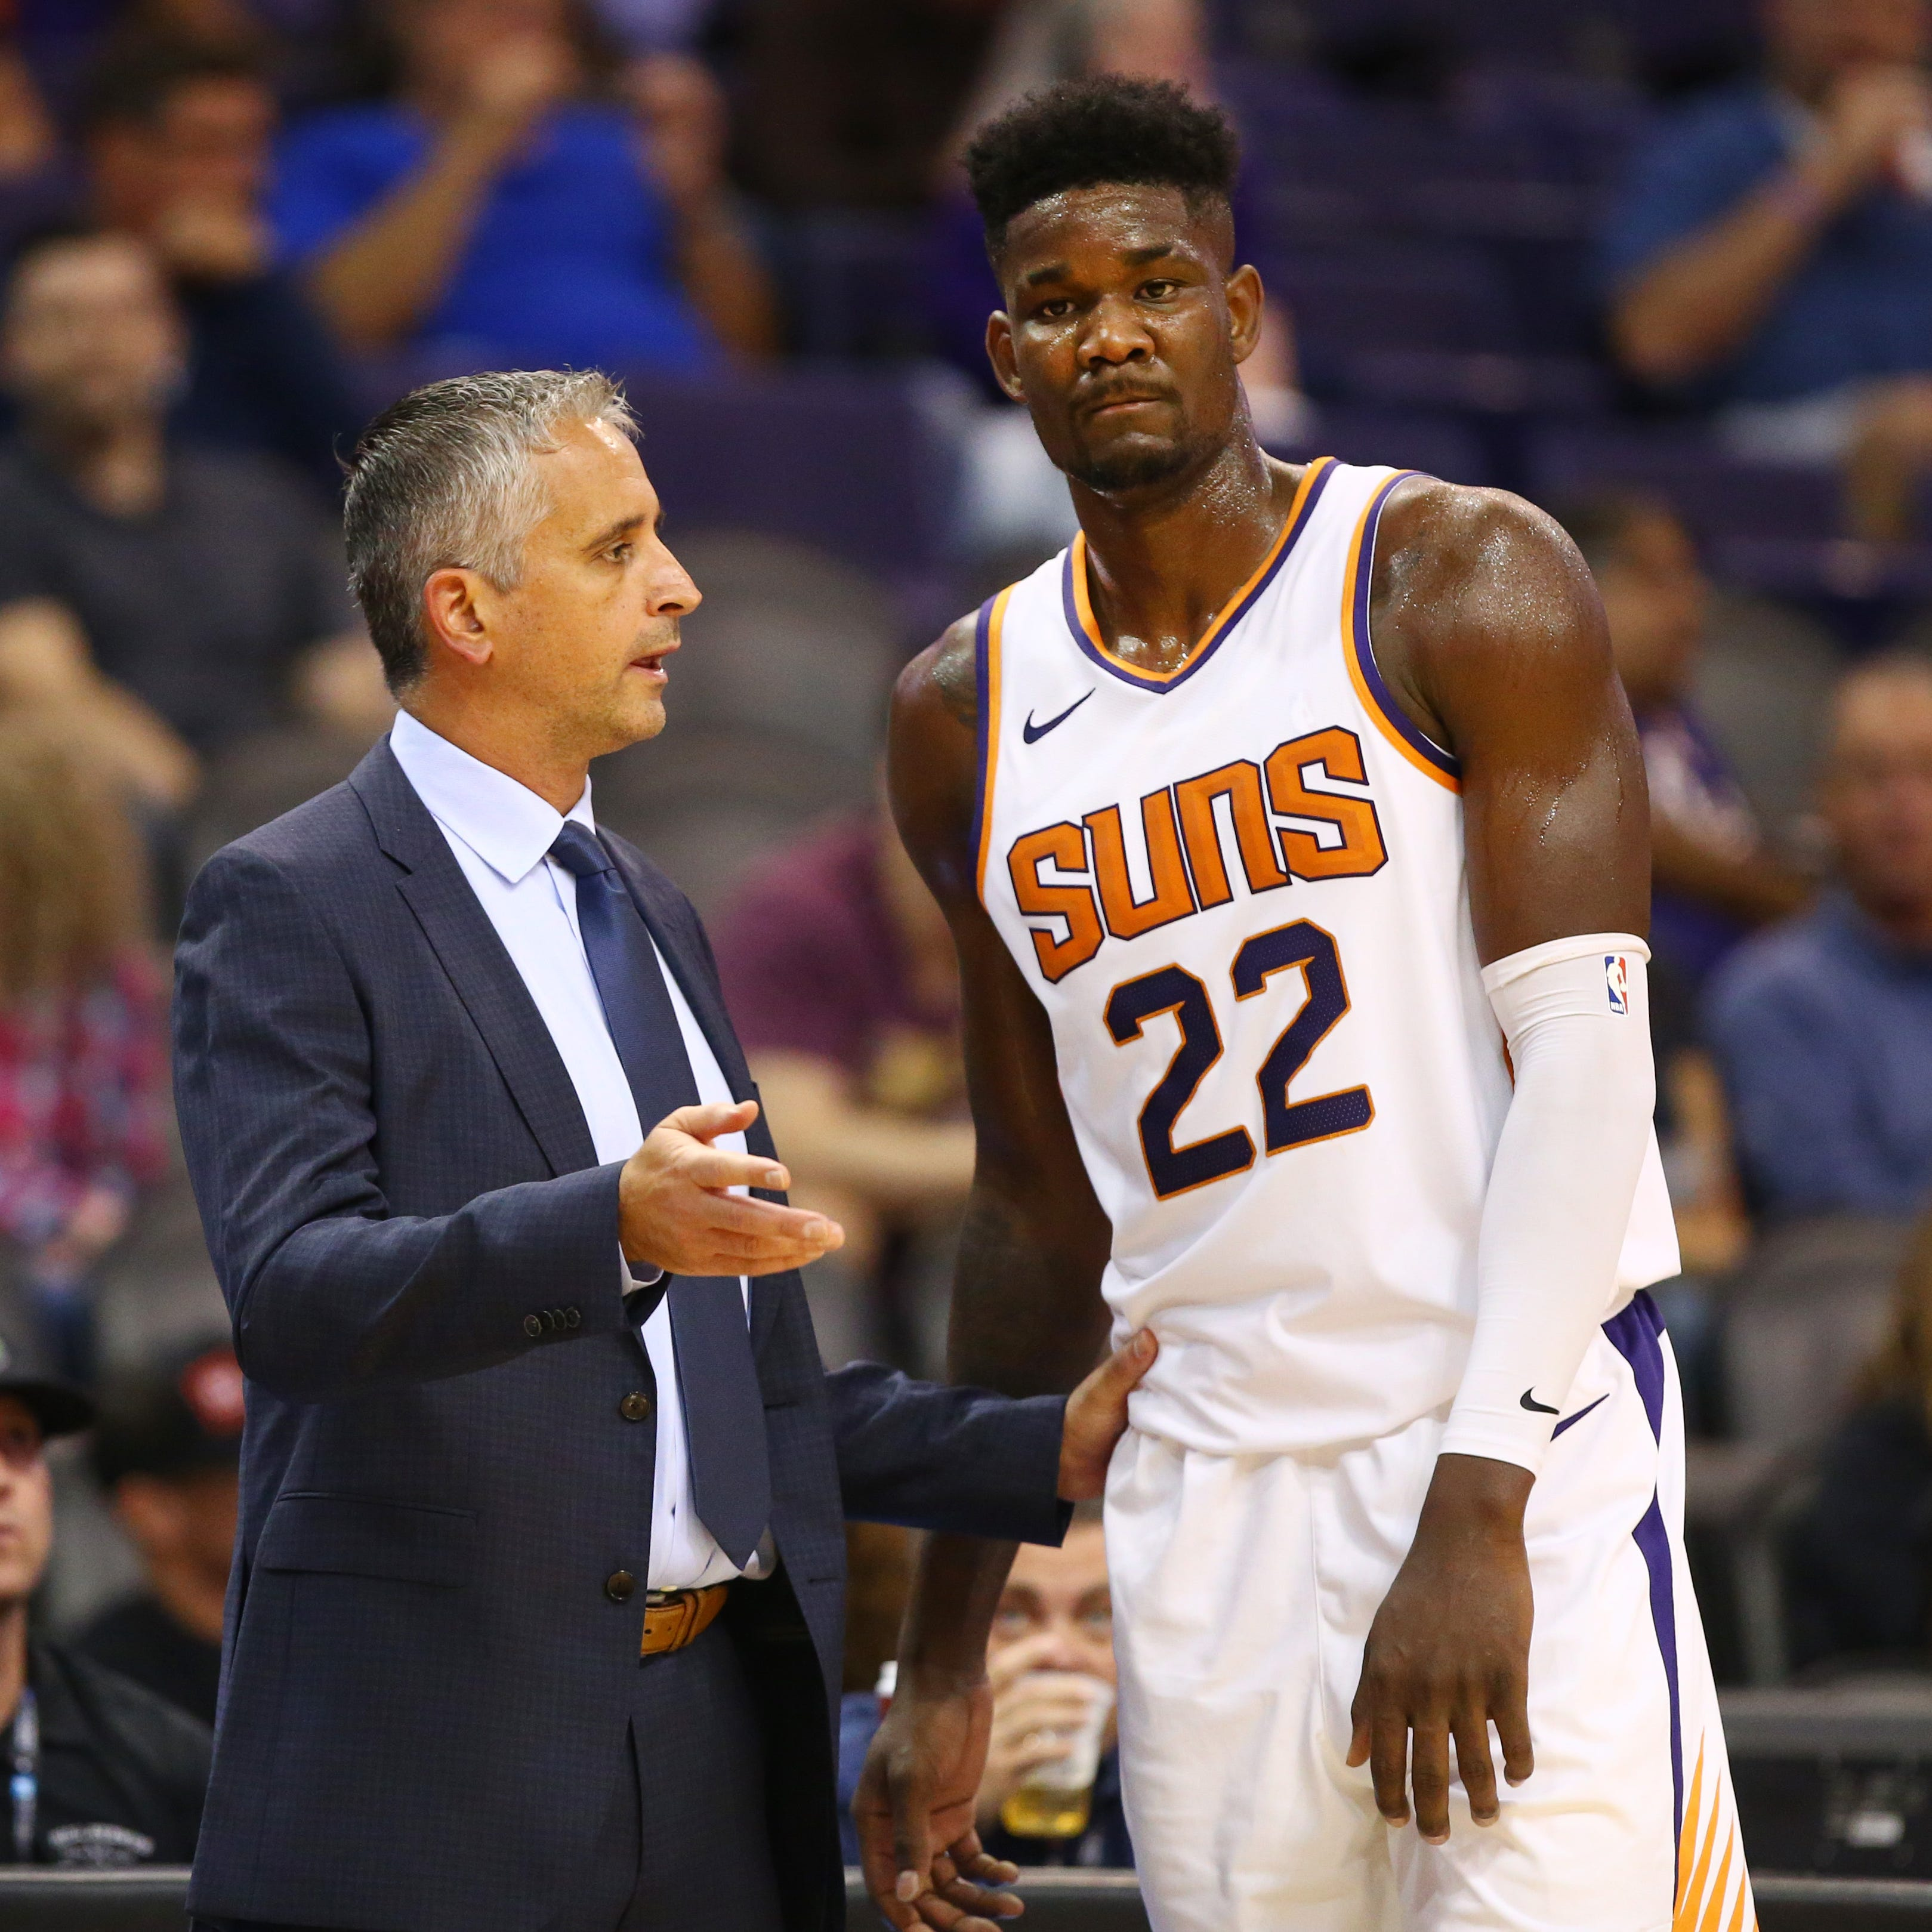 Deandre Ayton and the Phoenix Suns have huge offseasons ahead of them